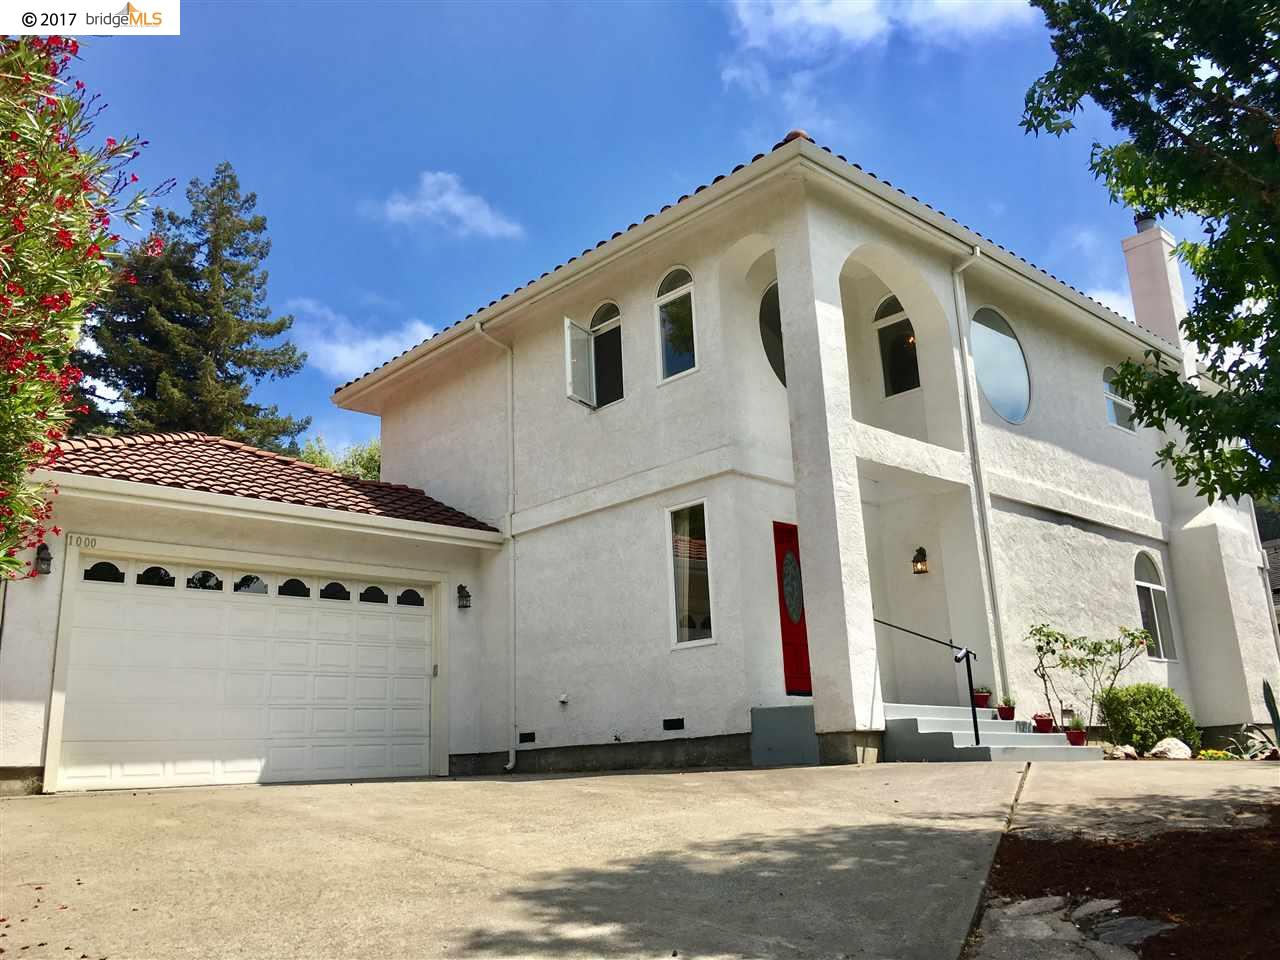 1000 AQUARIUS WAY, OAKLAND, CA 94611